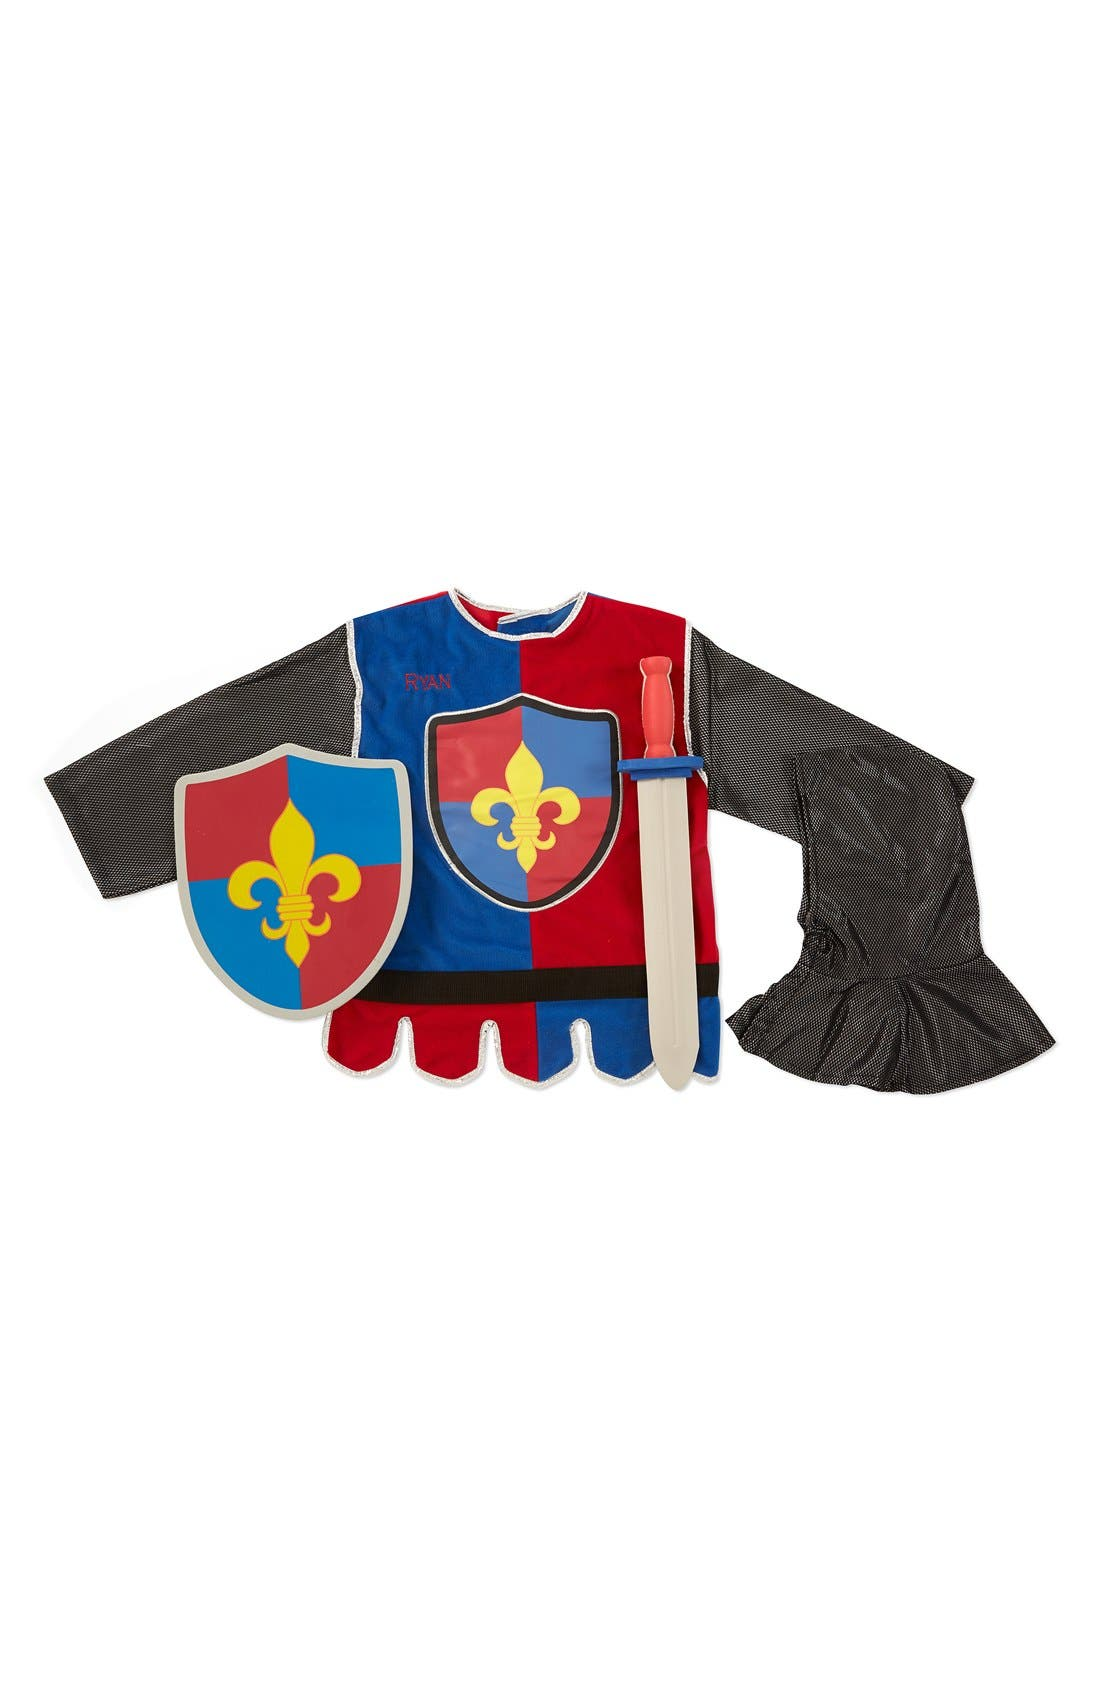 Melissa & Doug 'Knight' Personalized Costume Set (Toddler)